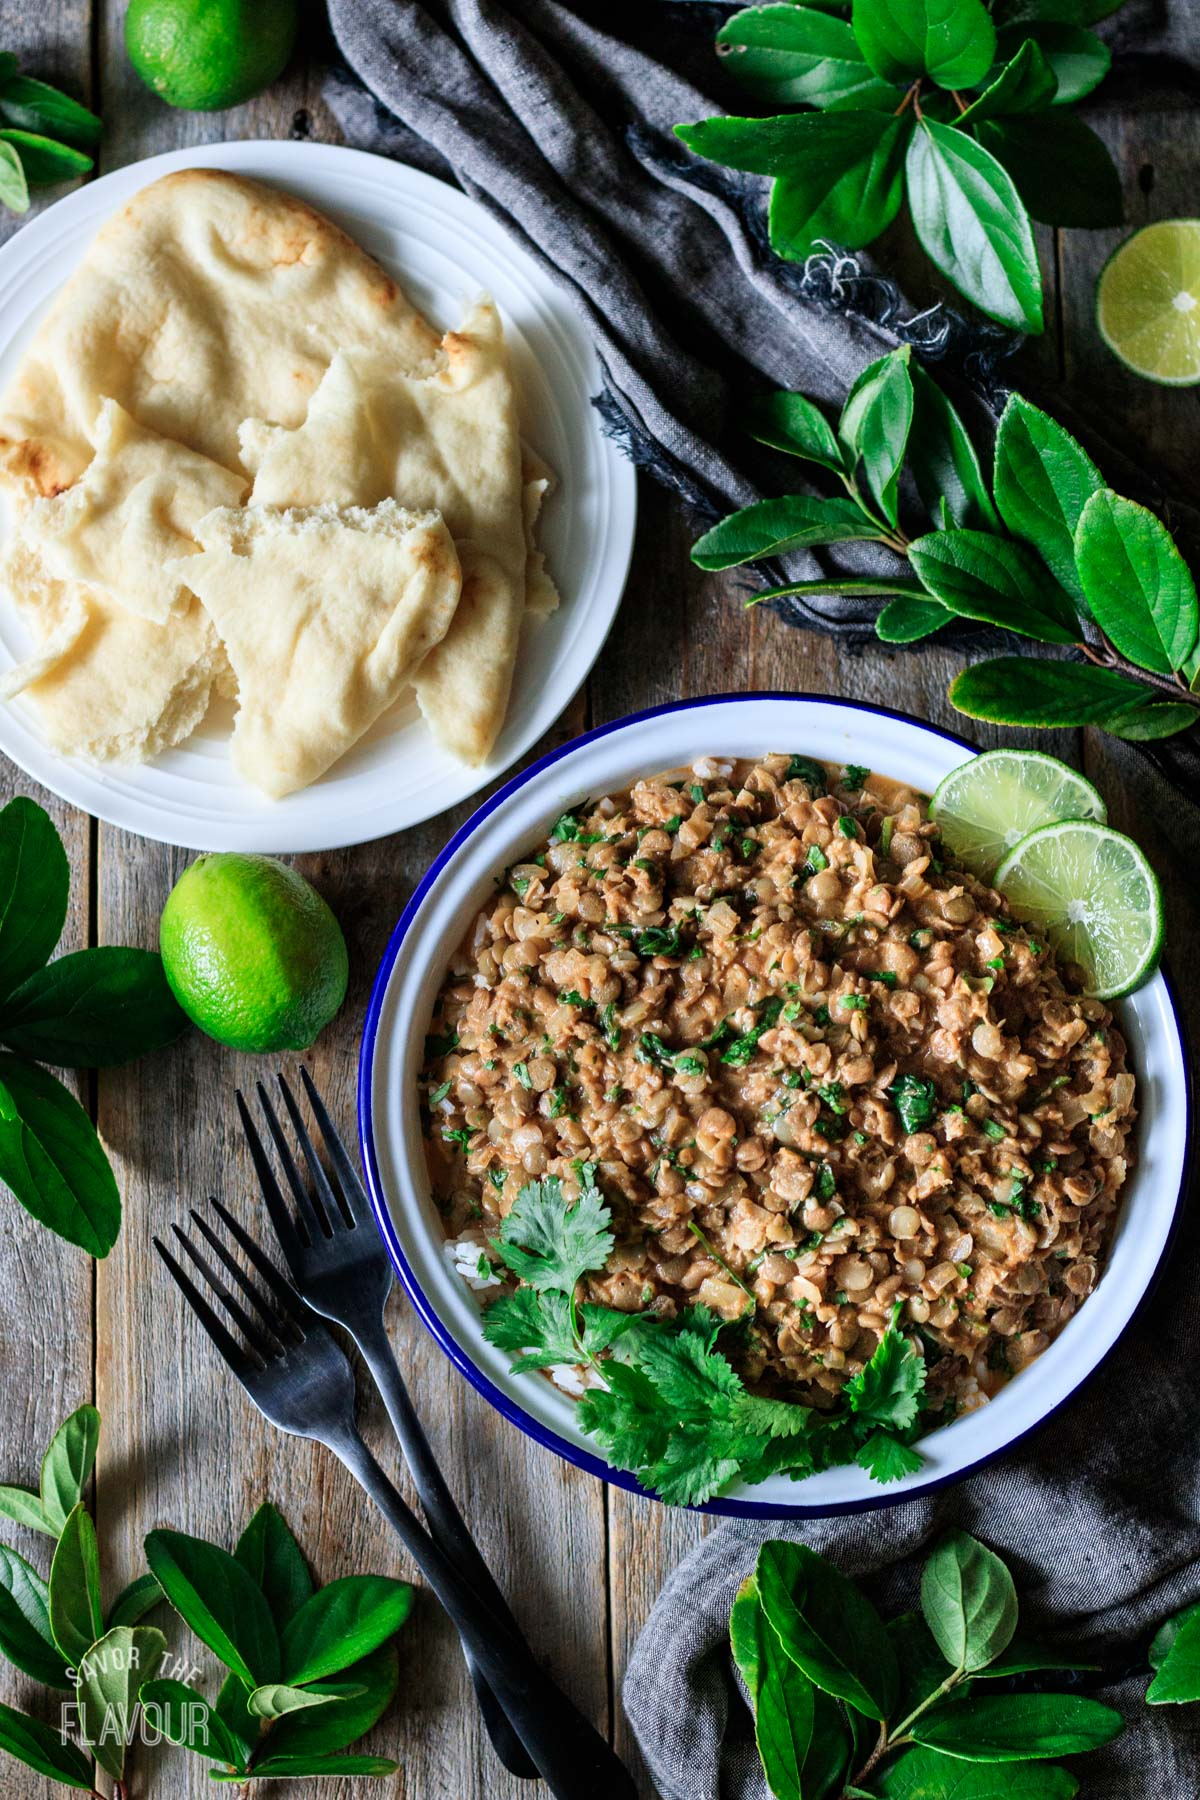 bowl of green curry lentils with a plate of naan bread